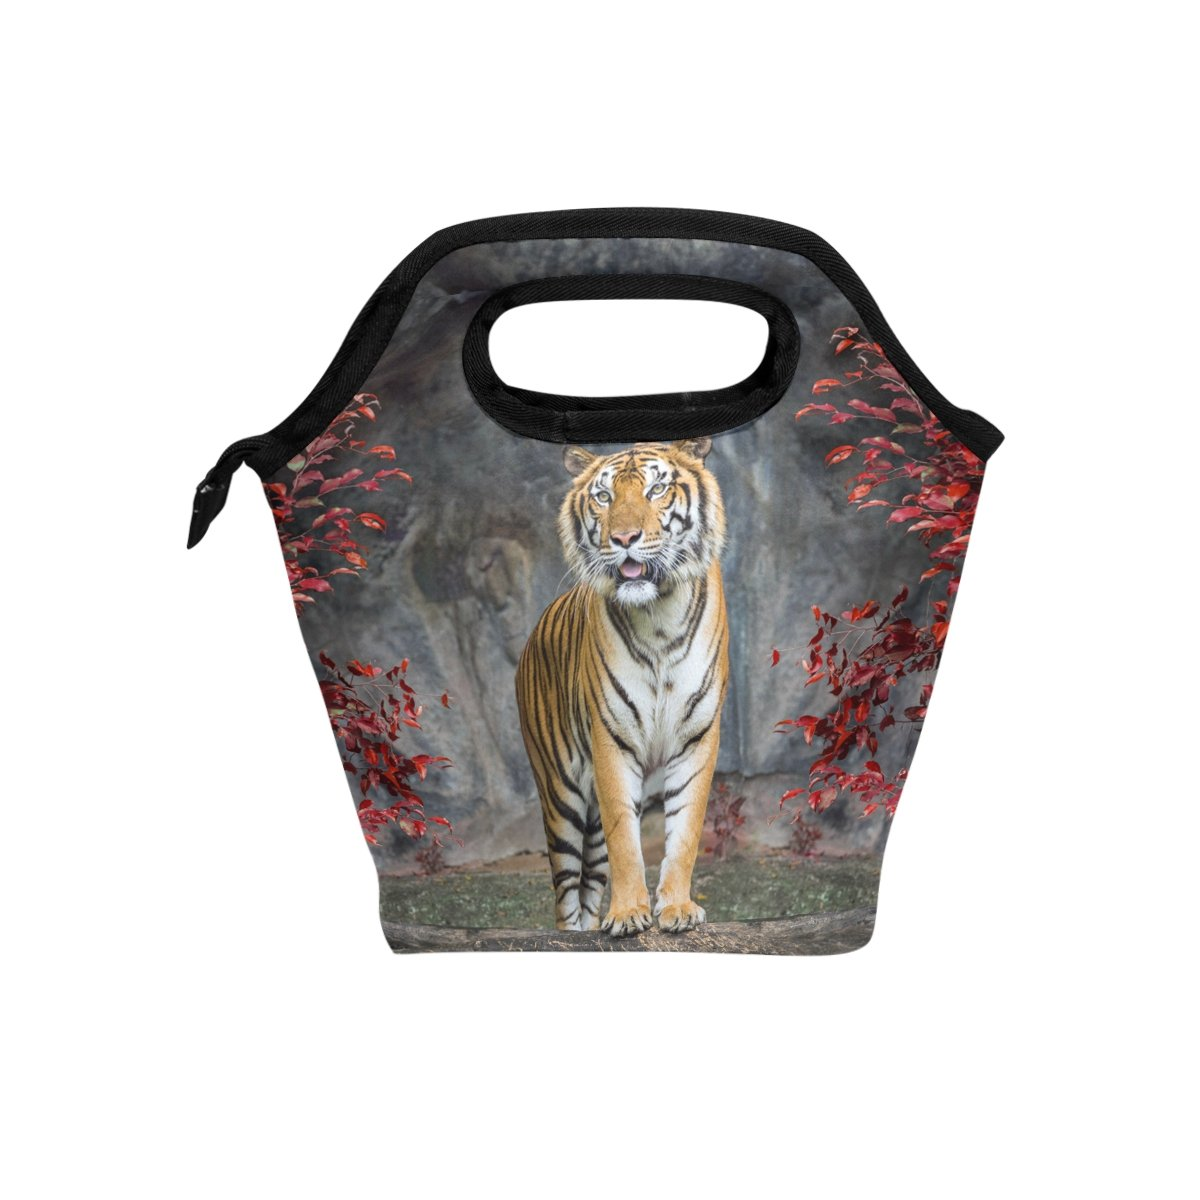 Bettken Lunch Bag African Animal Tiger Insulated Reusable Lunch Box Portable Lunch Tote Bag Meal Bag Ice Pack for Kids Boys Girls Adult Men Women